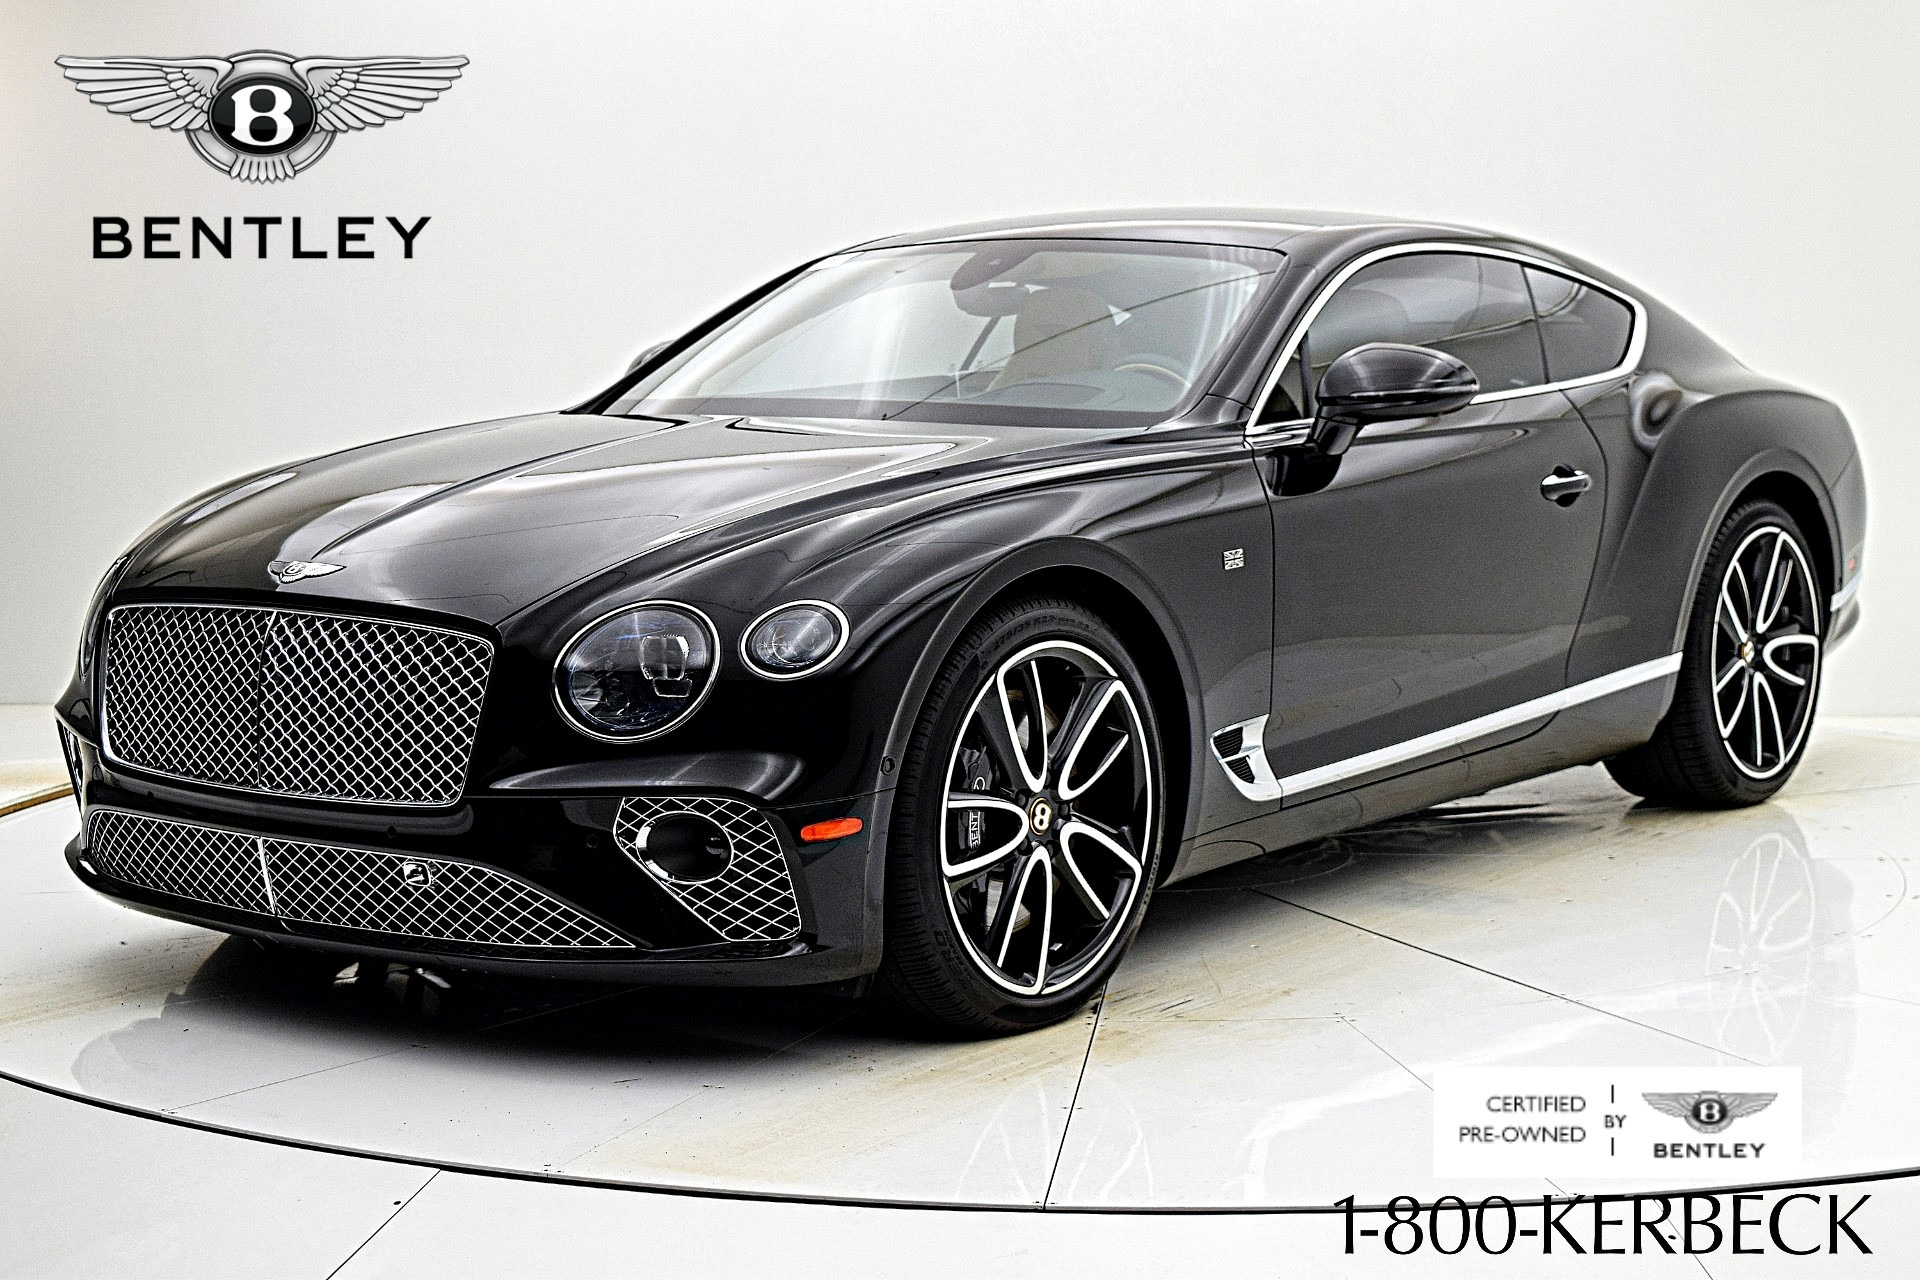 Used 2020 Bentley Continental GT V8 First Edition for sale $234,880 at F.C. Kerbeck Aston Martin in Palmyra NJ 08065 2